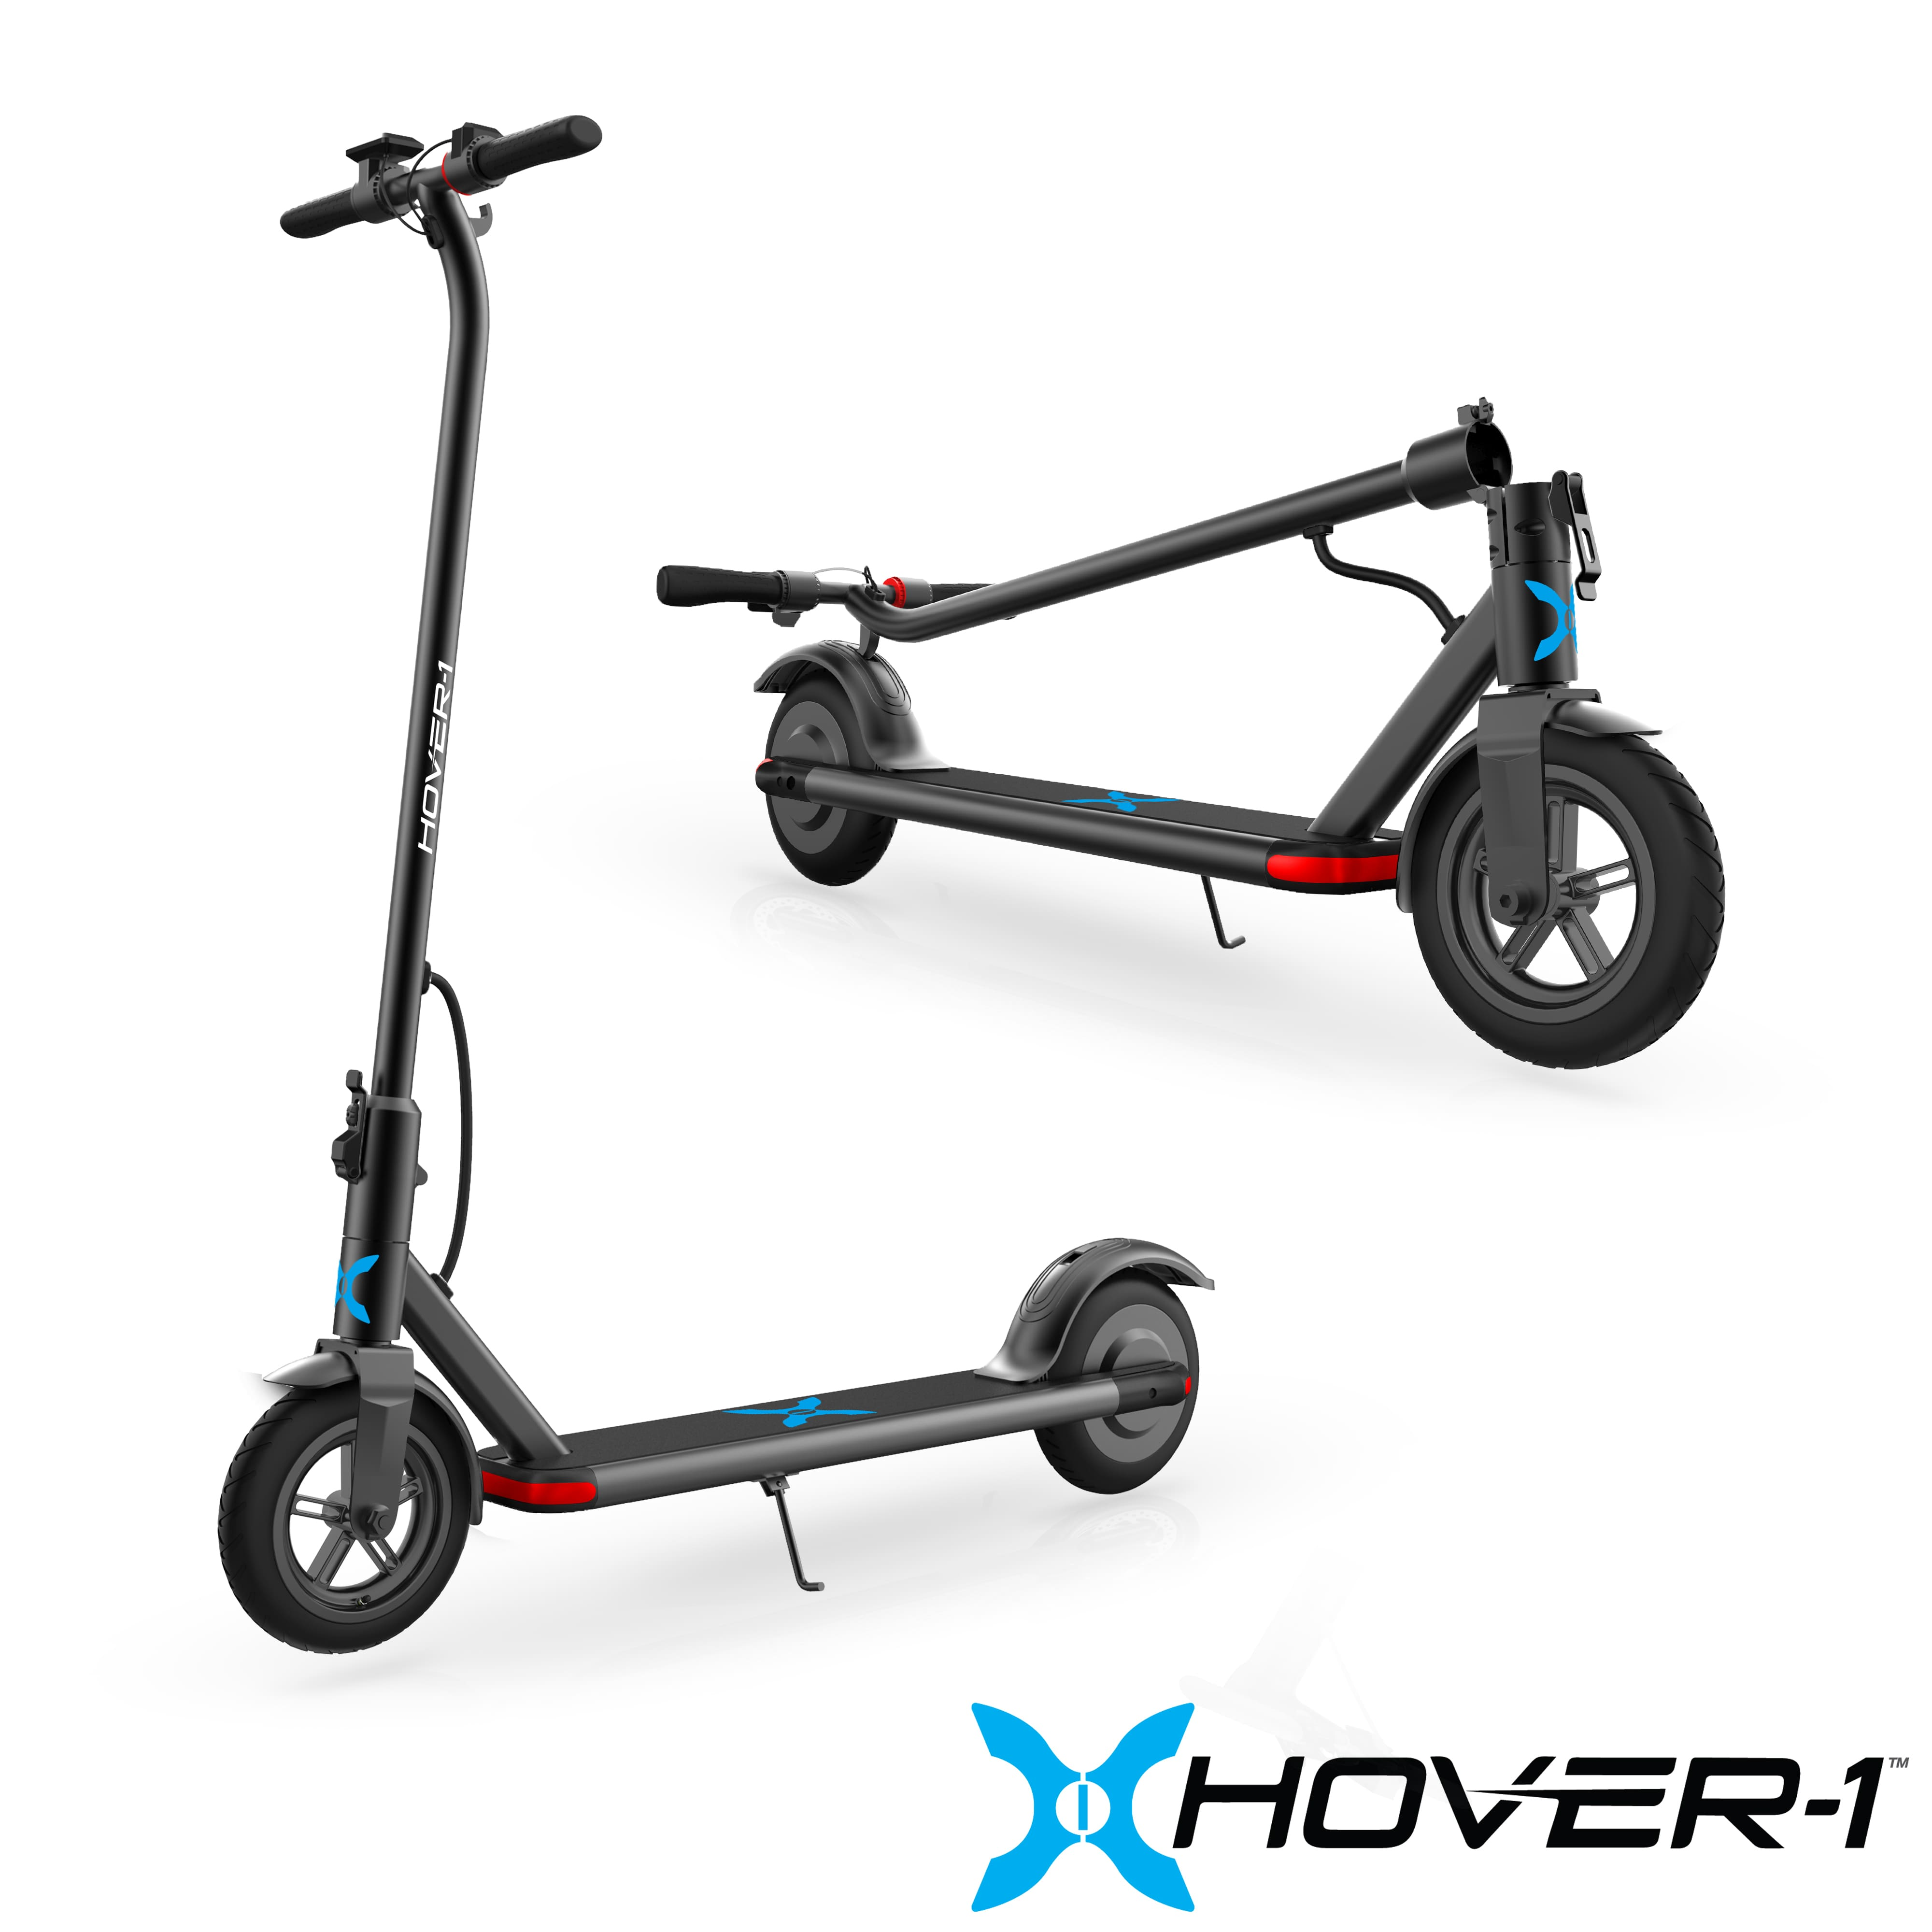 Walmart -Hover-1 Dynamo Electric Folding Scooter- Black - $149